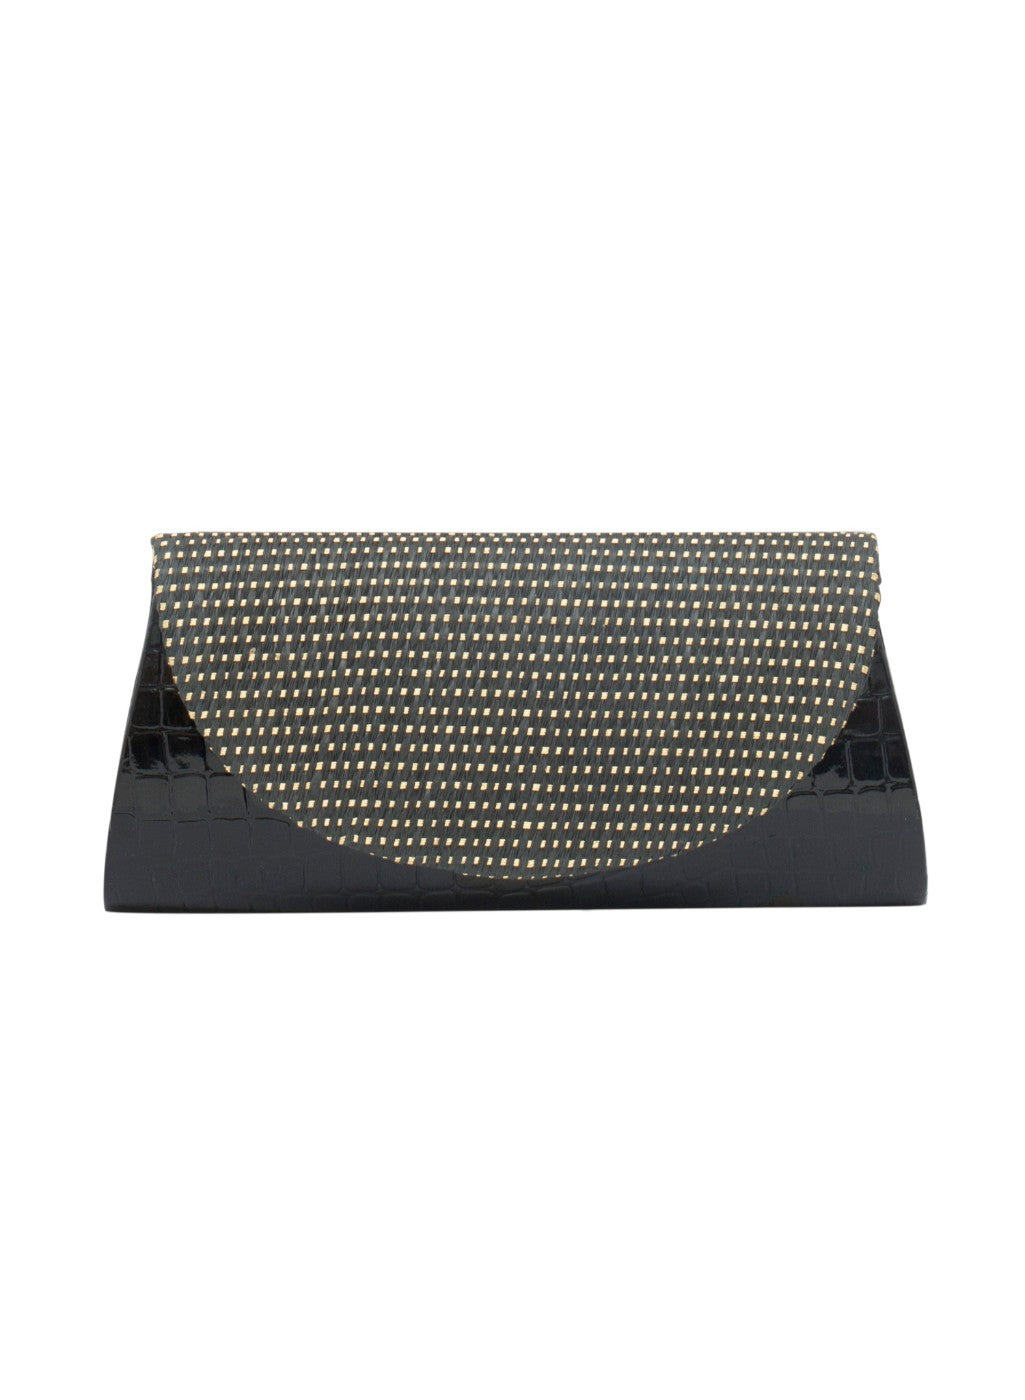 Sleek and spacious, this Black clutch from Tarusa makes for an instant steal this season. Showcasing a classic design, this clutch offers longevity too, courtesy its Textured Fabric body.